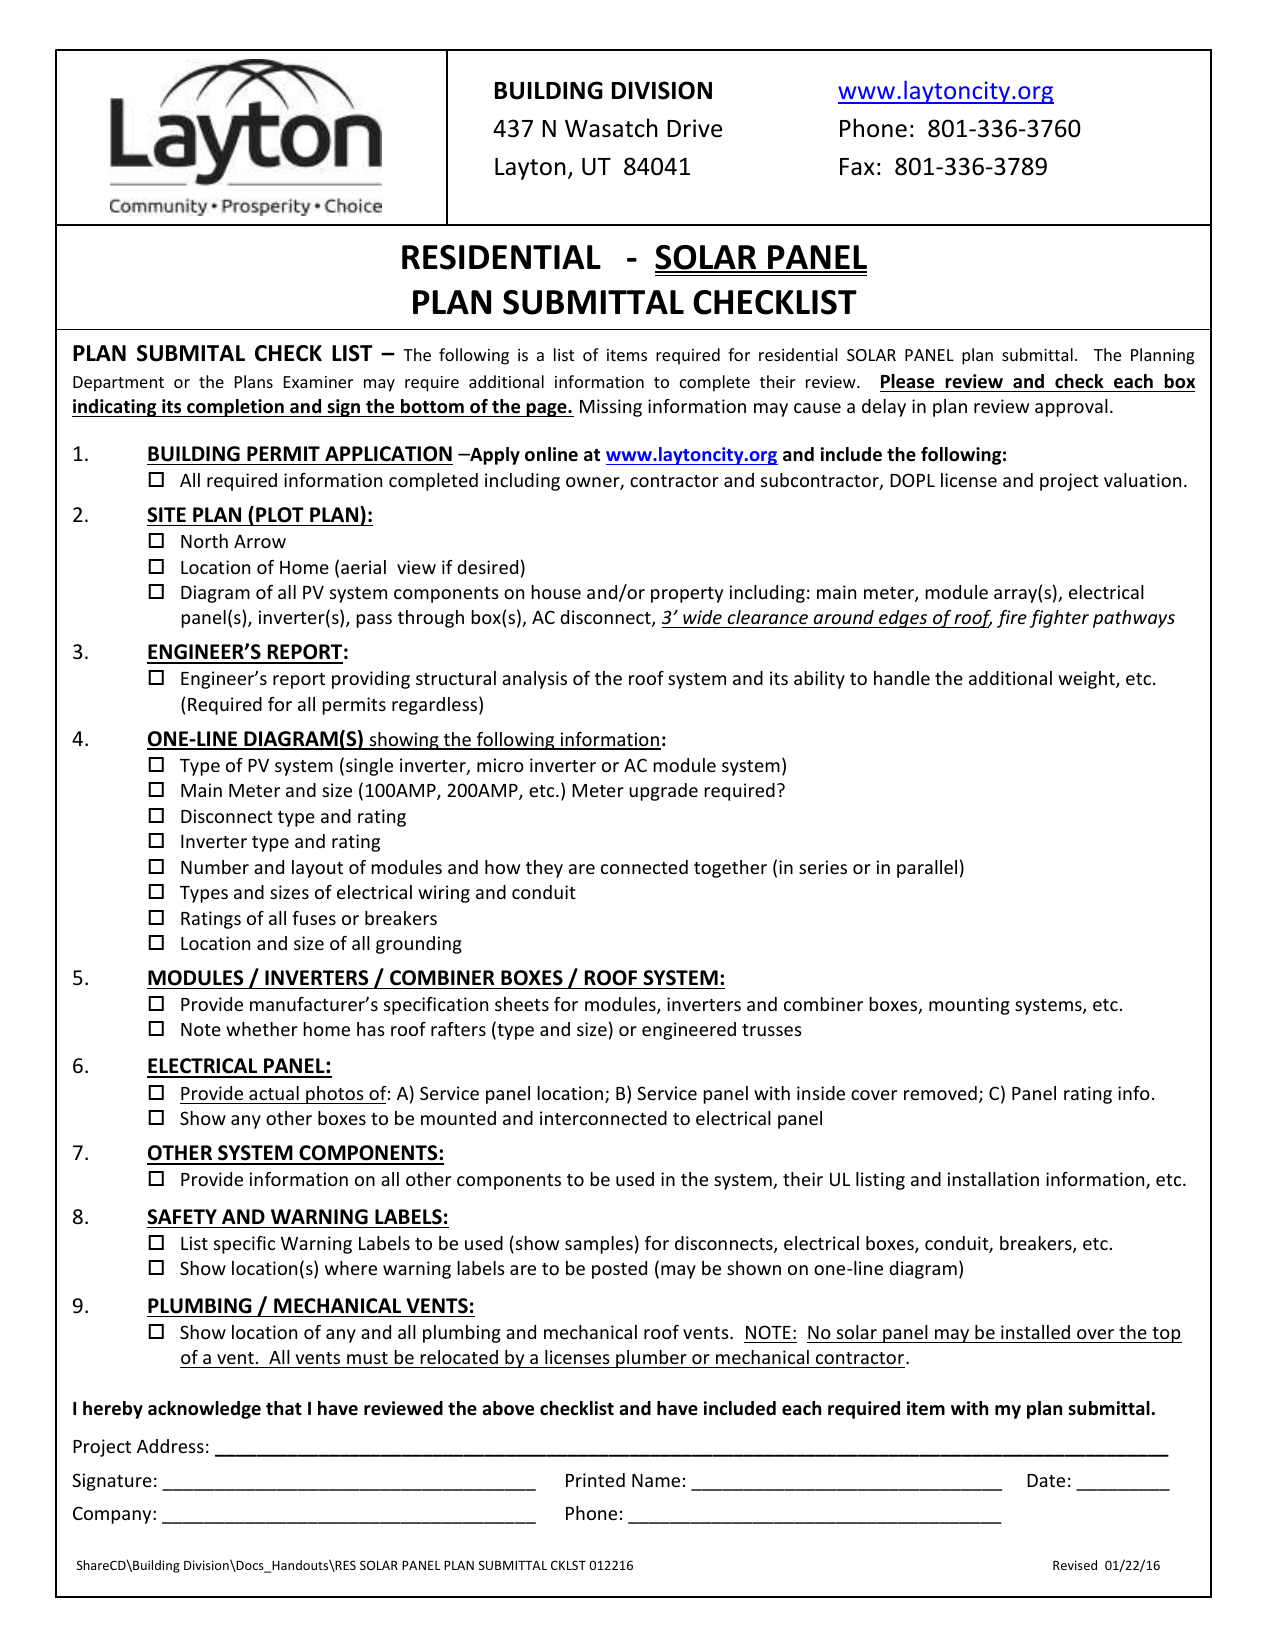 ut 84041 www laytoncity org phone: 801-336-3760 fax: 801-336-3789  residential - solar panel plan submittal checklist plan submital check list  – the